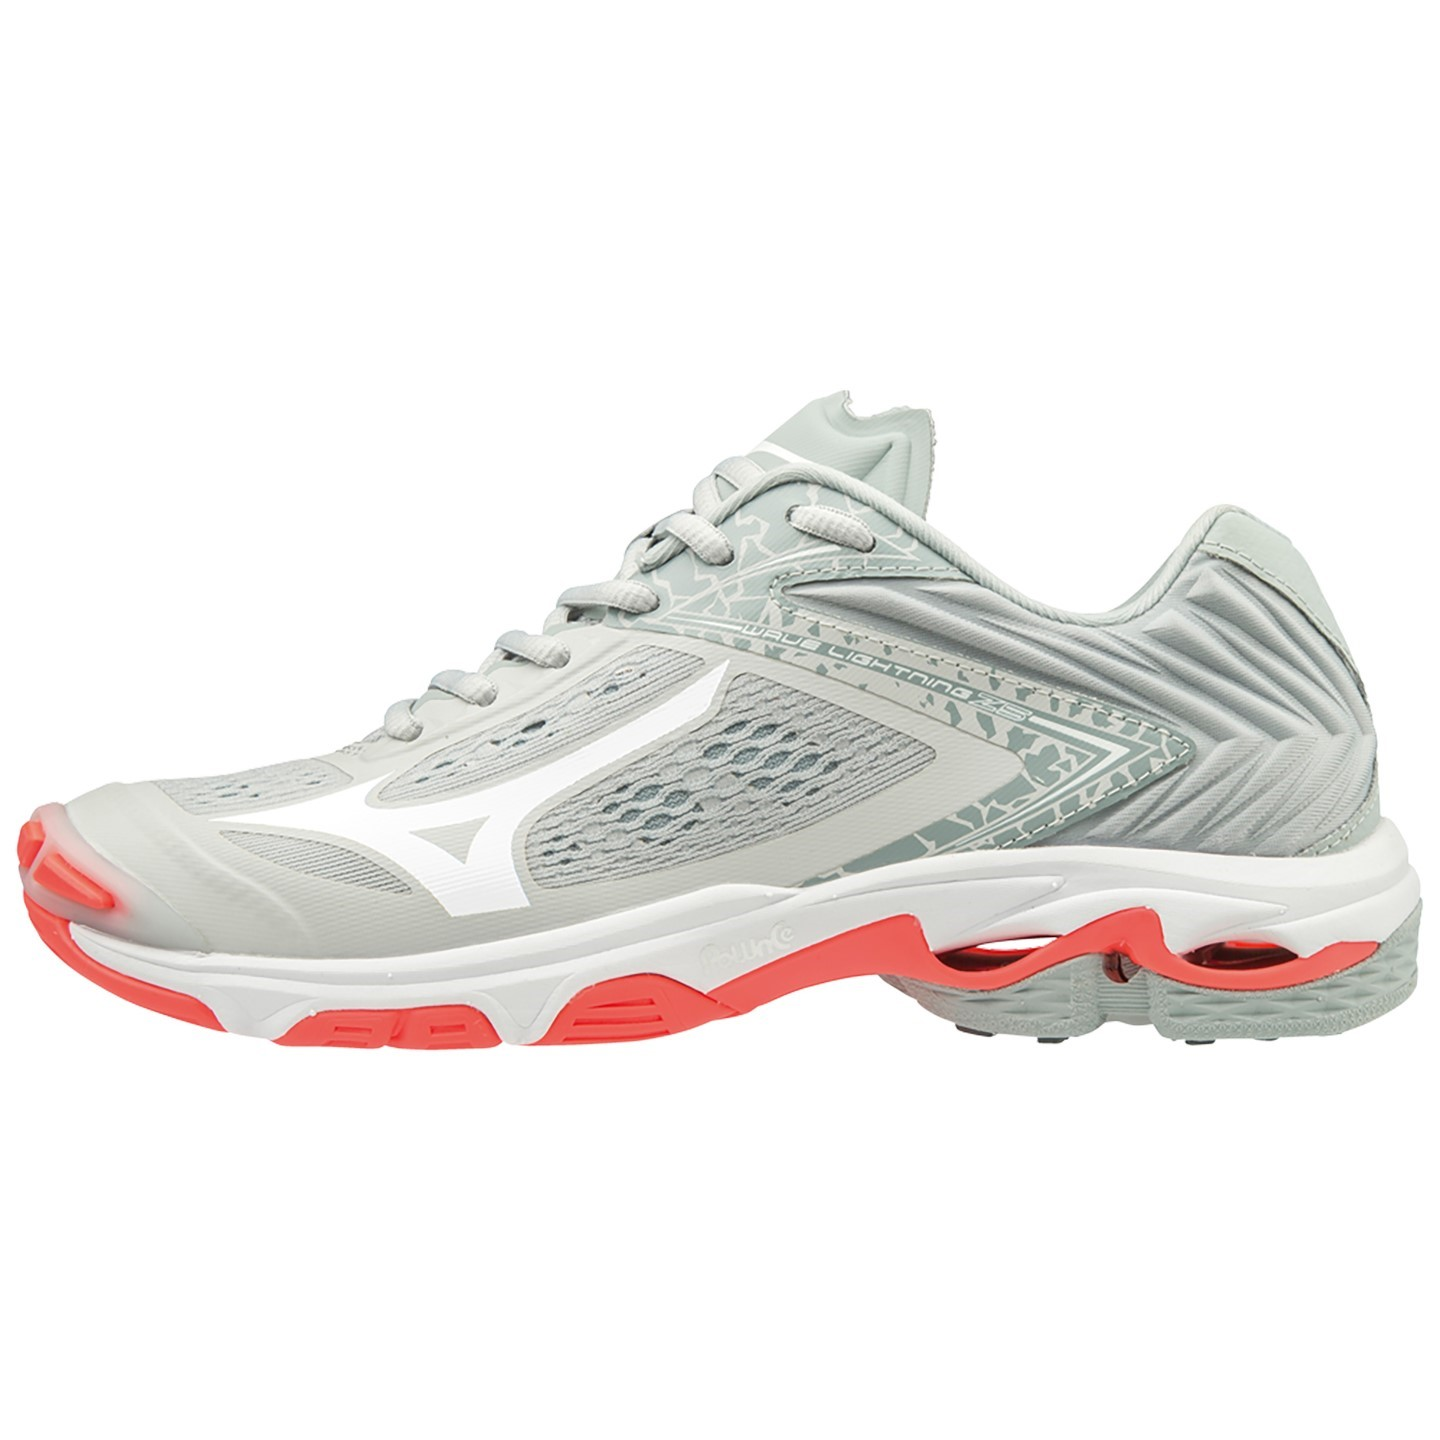 mizuno mens running shoes size 11 youtube philippines colombia